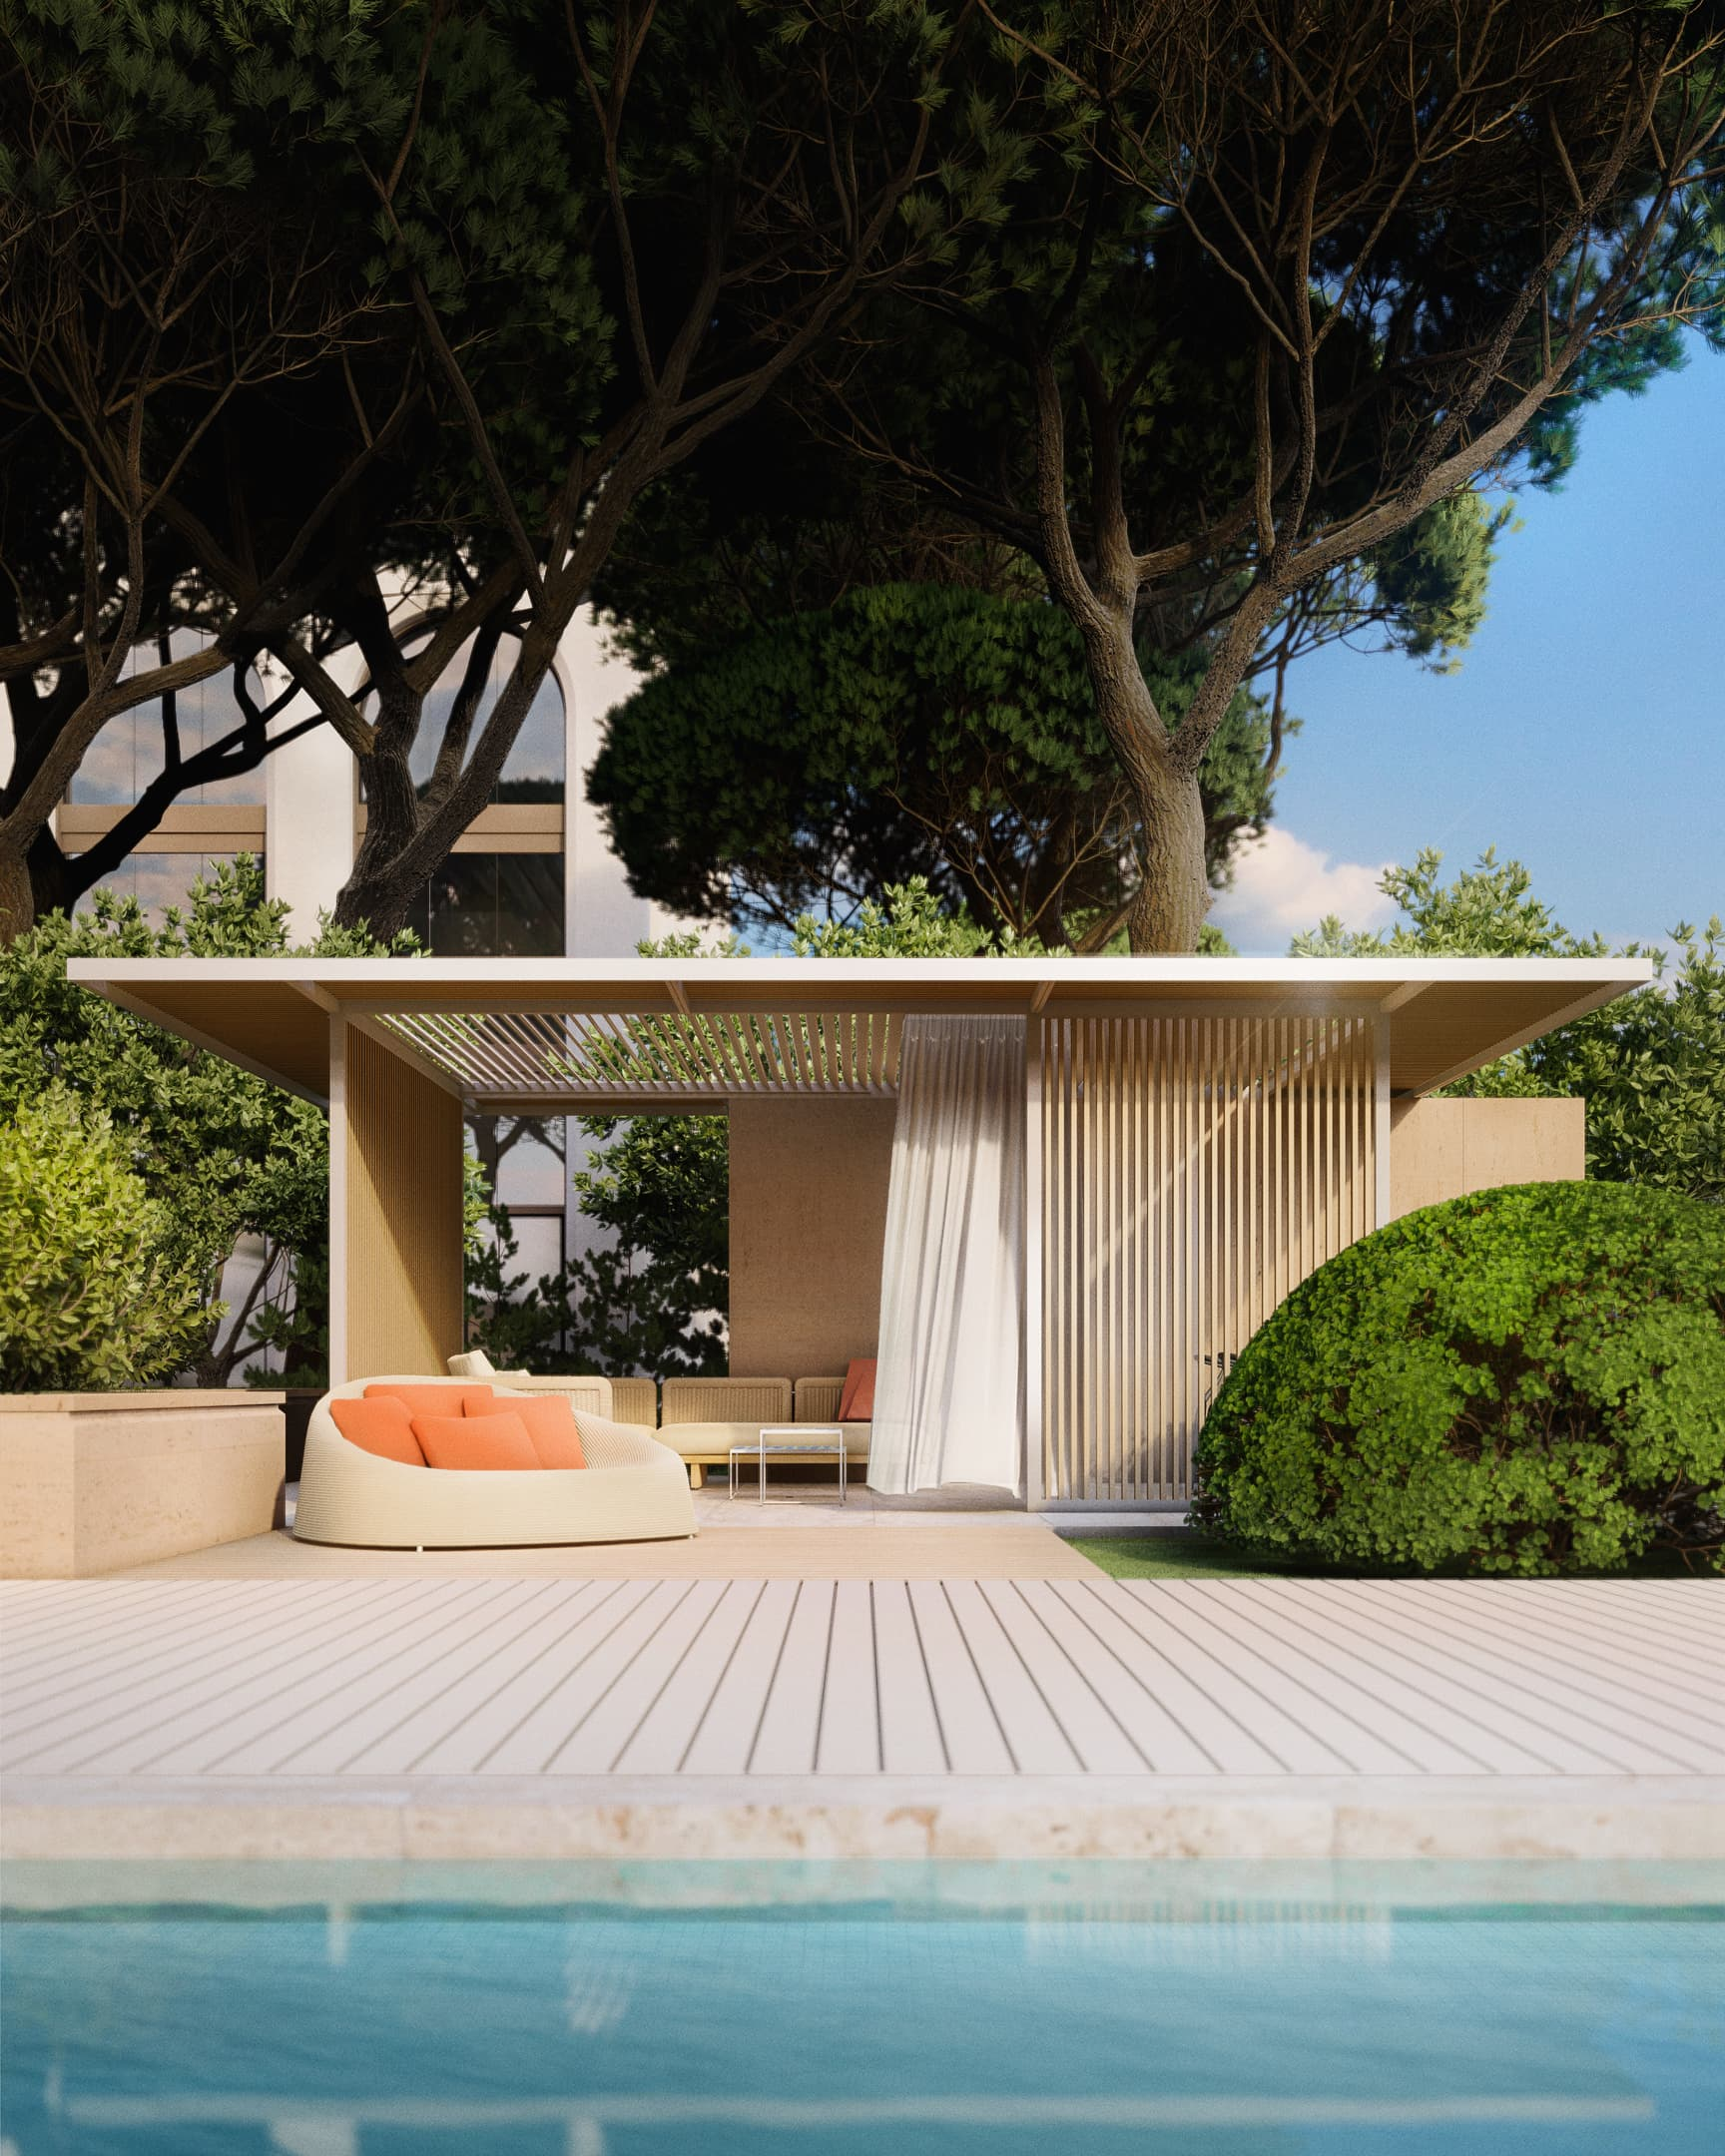 Poolside, Hotel Le Mas. Rendered in Lumion by Ten Over Media.